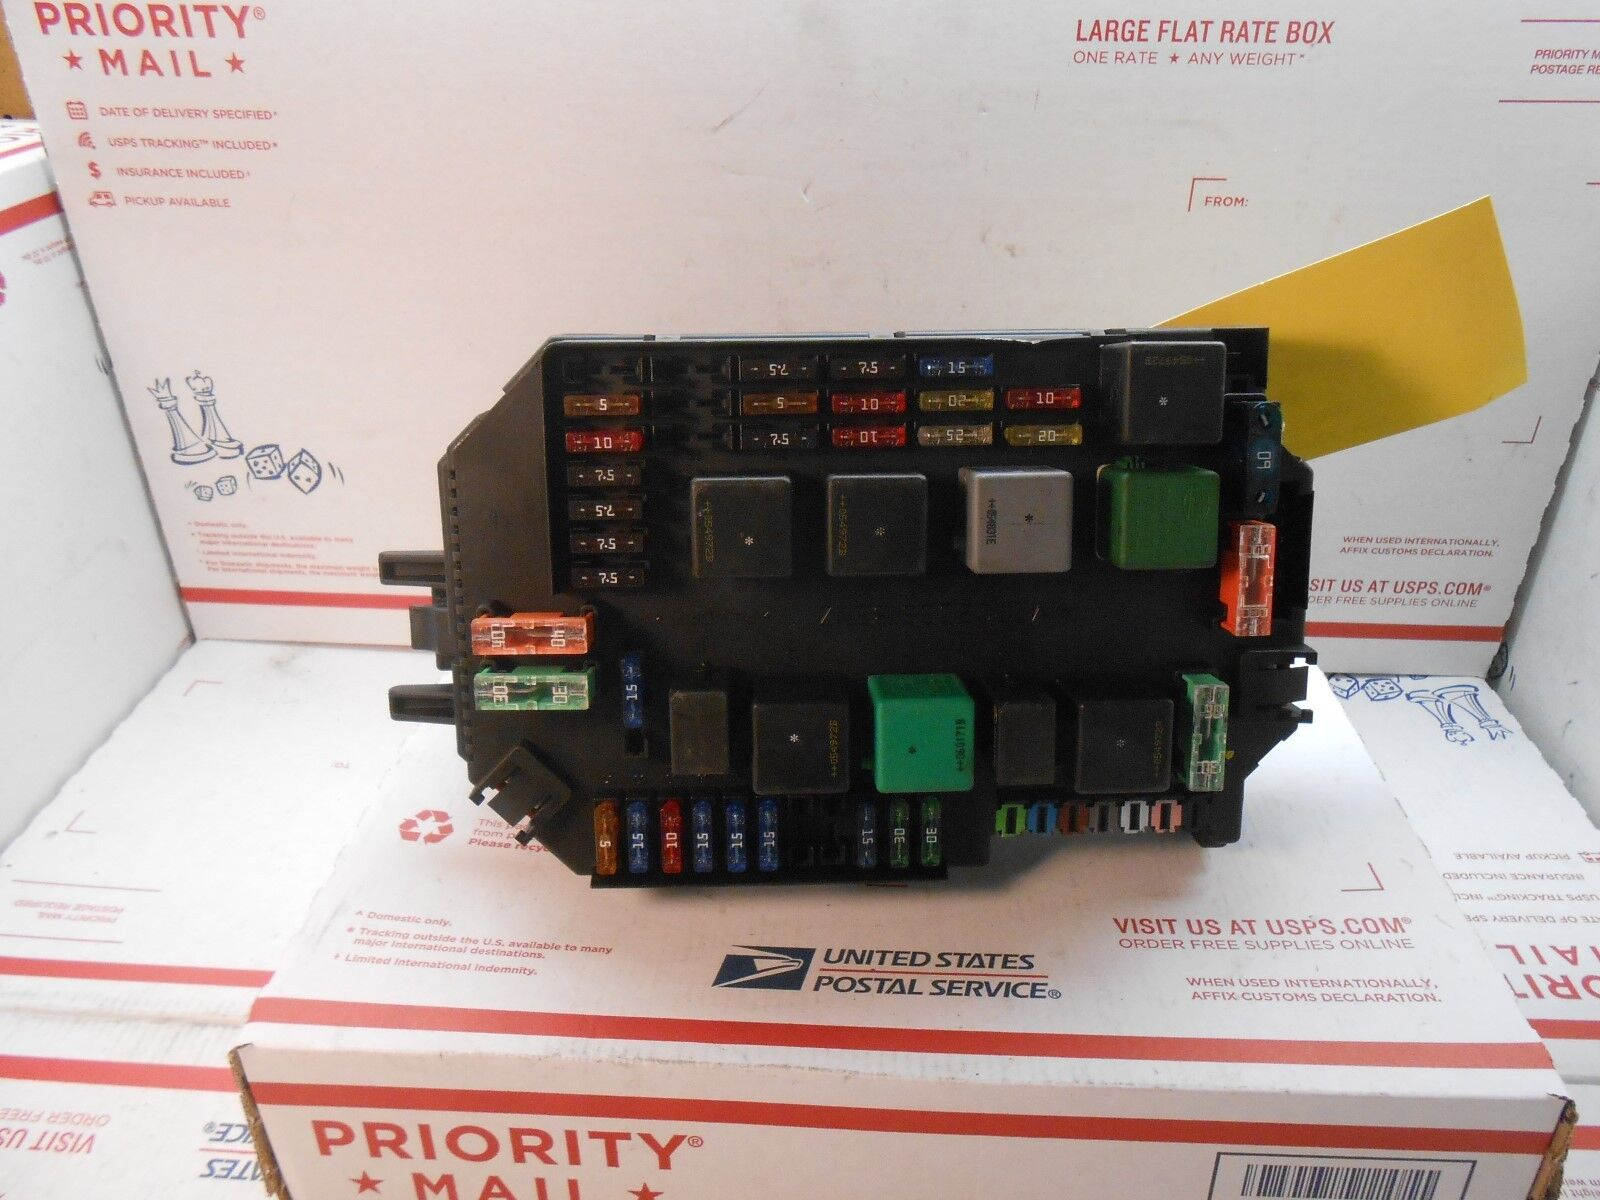 Used Mercedes Benz Controllers For Sale Page 8 2007 S550 Fuse Chart Along With How To Replace Breaker 2009 S Class Box A 2215408345 Pl0137